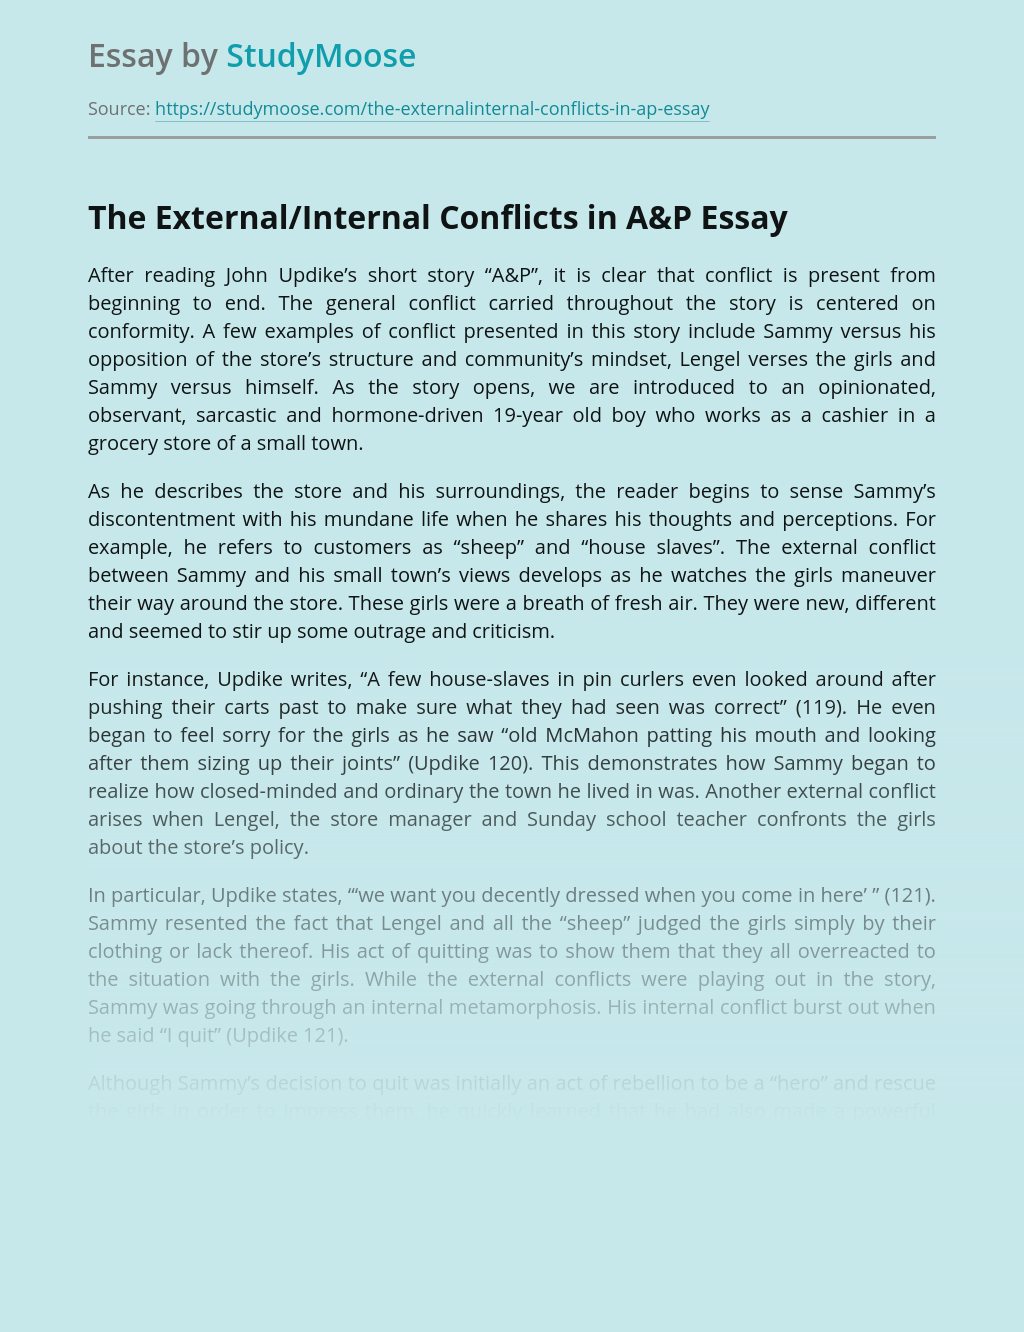 The External/Internal Conflicts in A&P